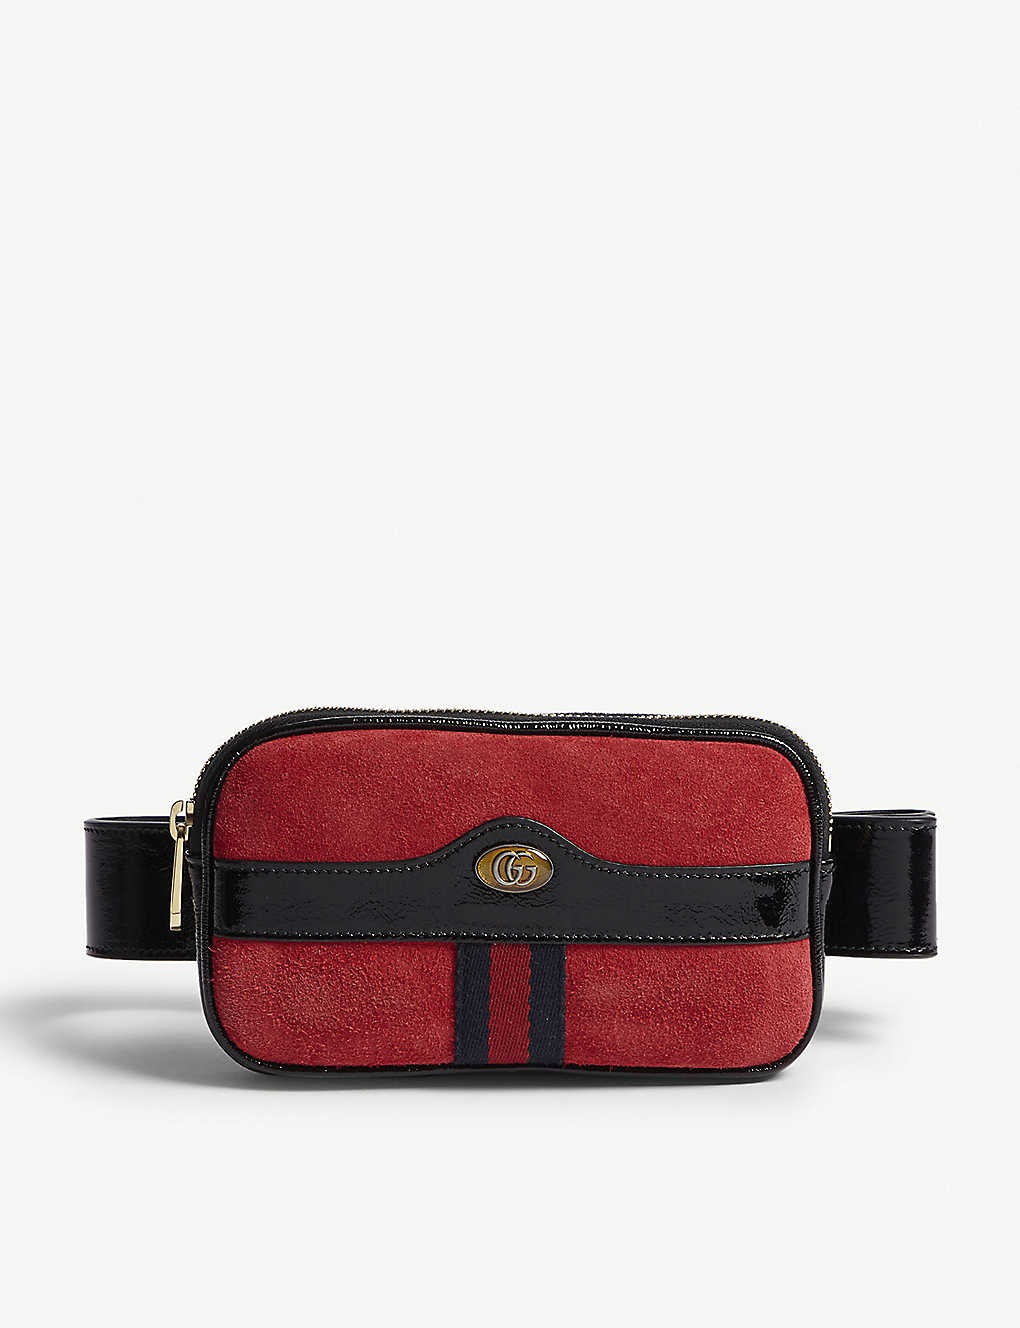 5848d4ea61ce42 GUCCI - Ophidia small leather and suede belt bag   Selfridges.com